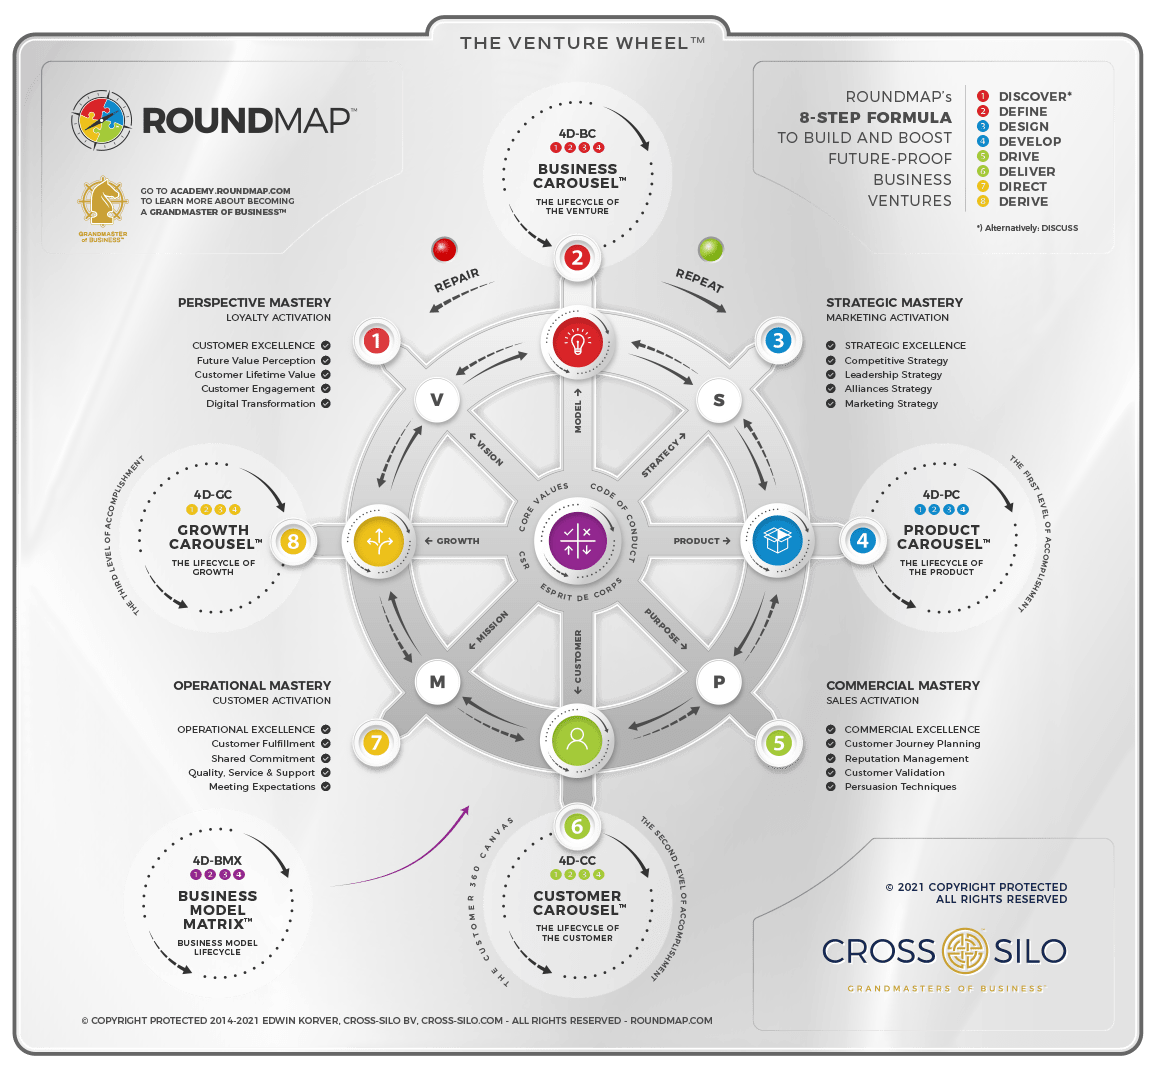 ROUNDMAP_8_Step_Venture_Wheel_Copyright_Protected_2021